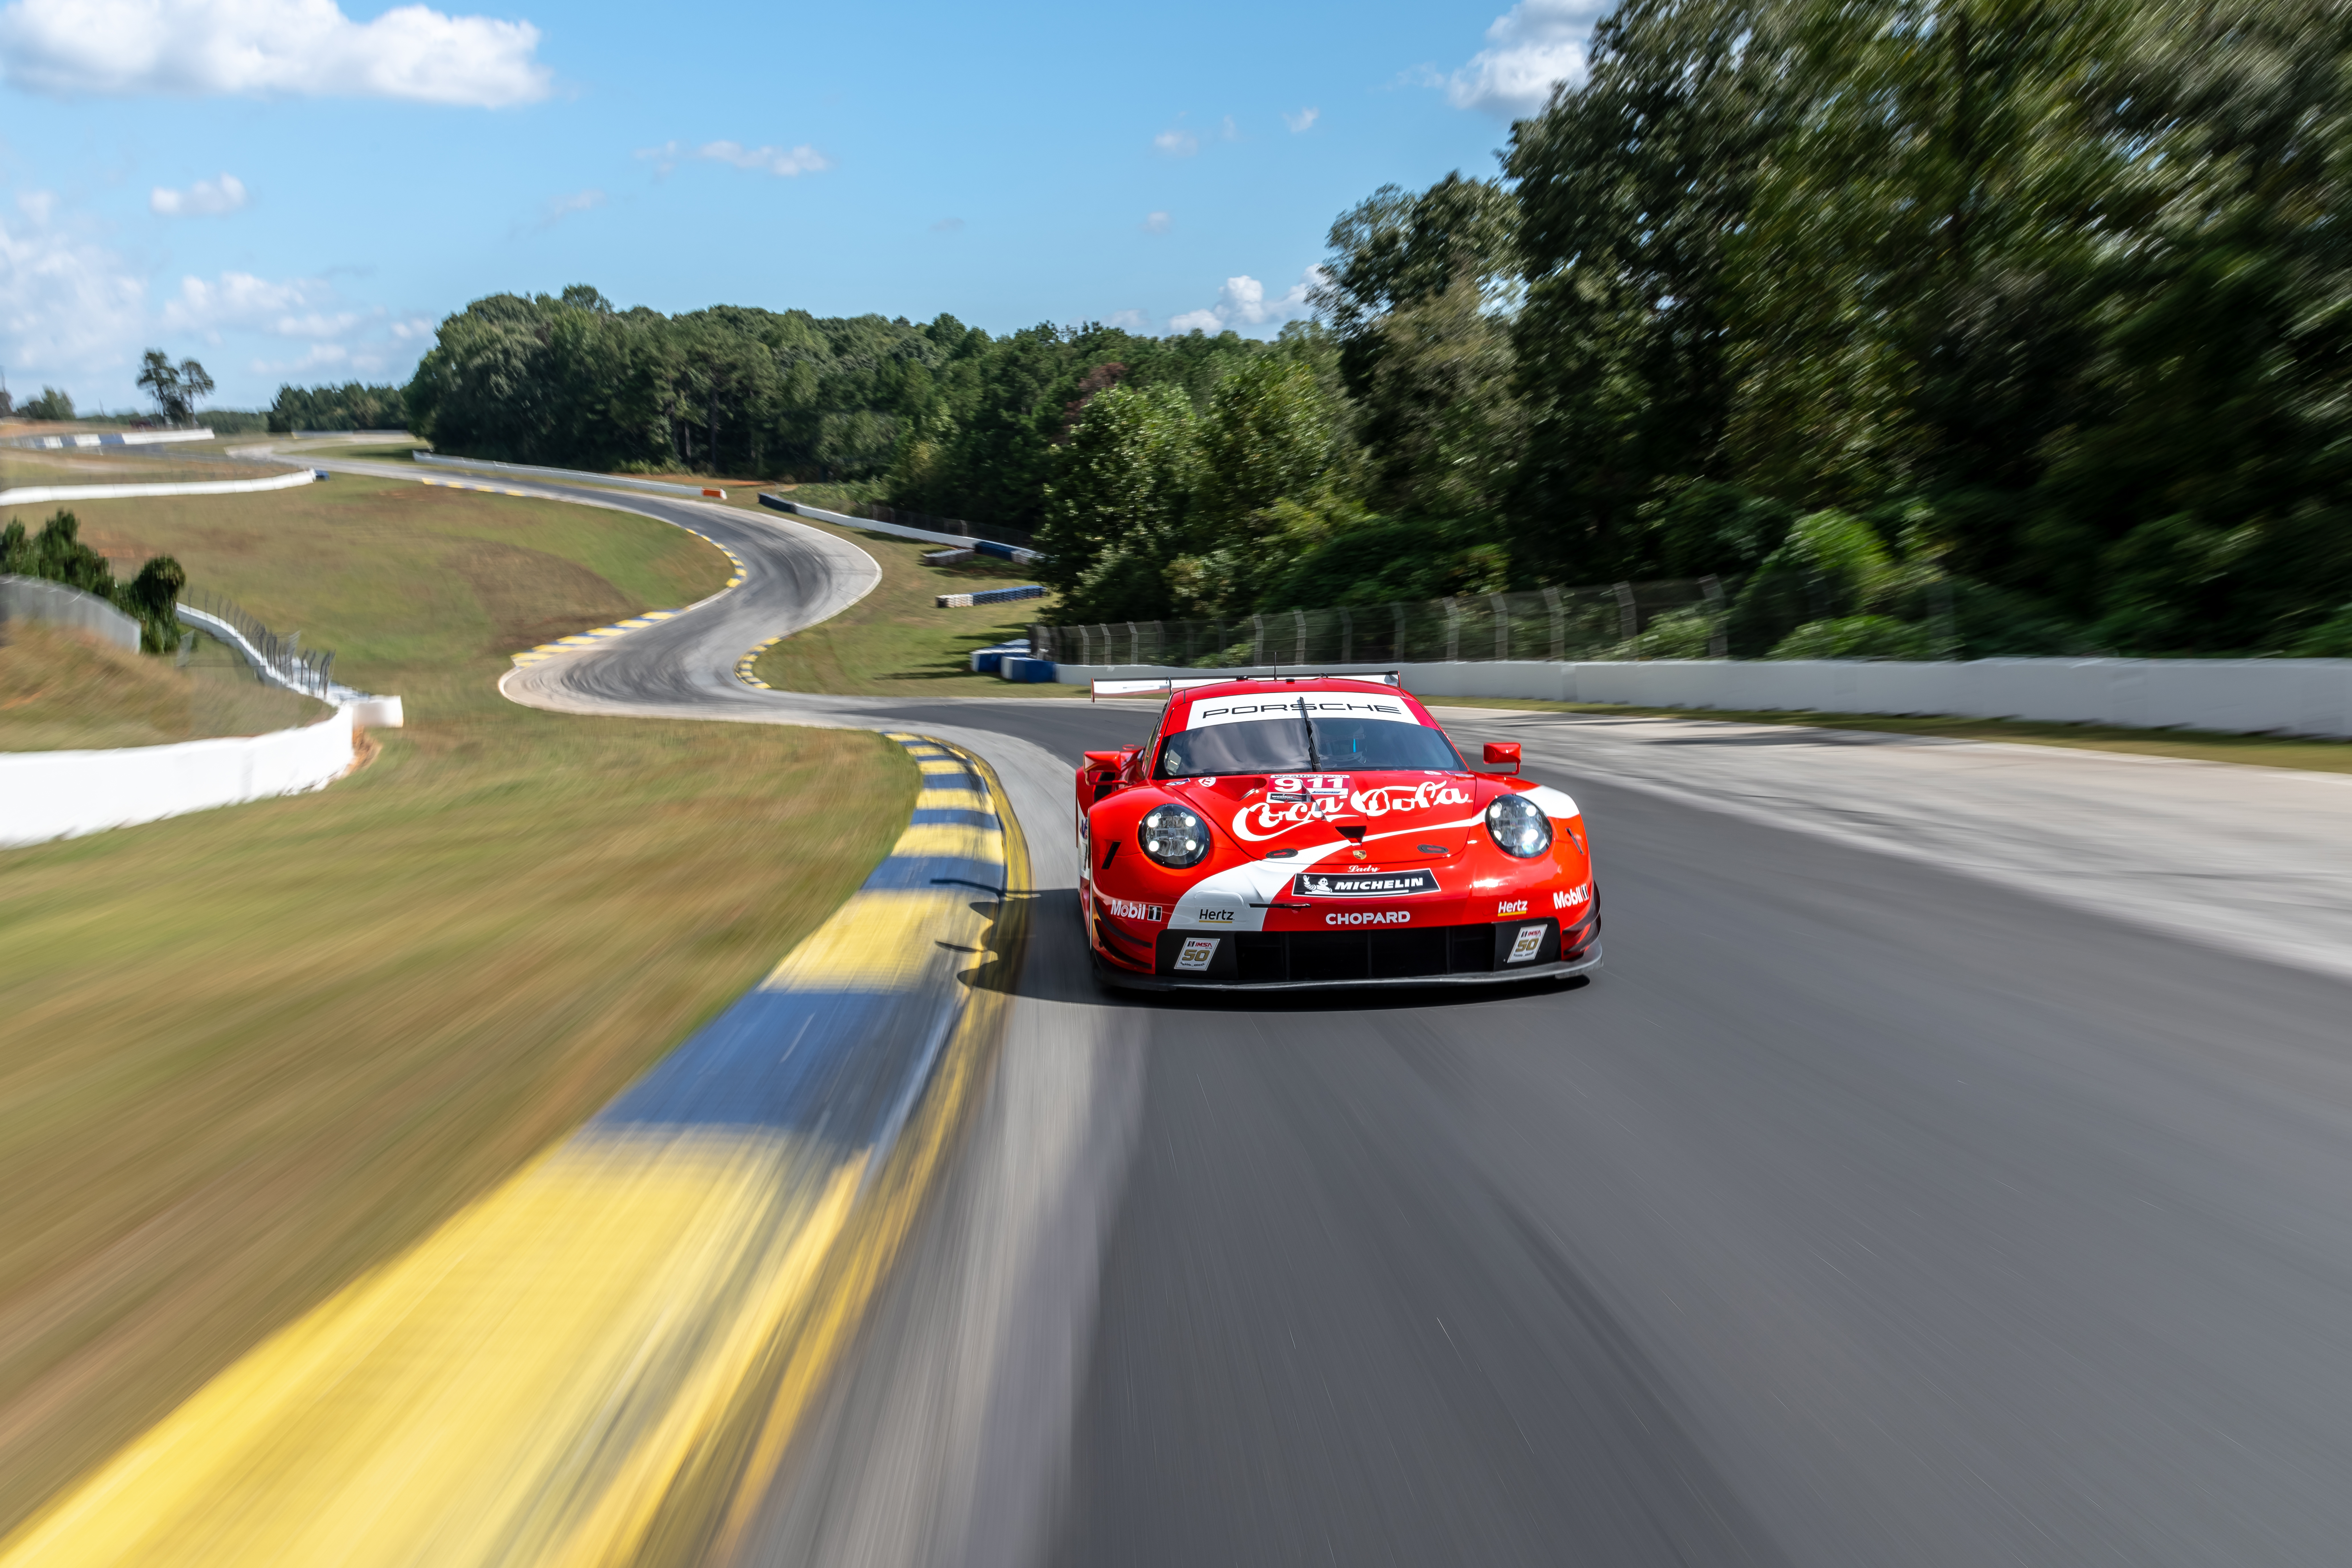 Coca-Cola Porsche GT Team Porsche 911 RSR, Michelin Raceway Road Atlanta, 2019, PCNA